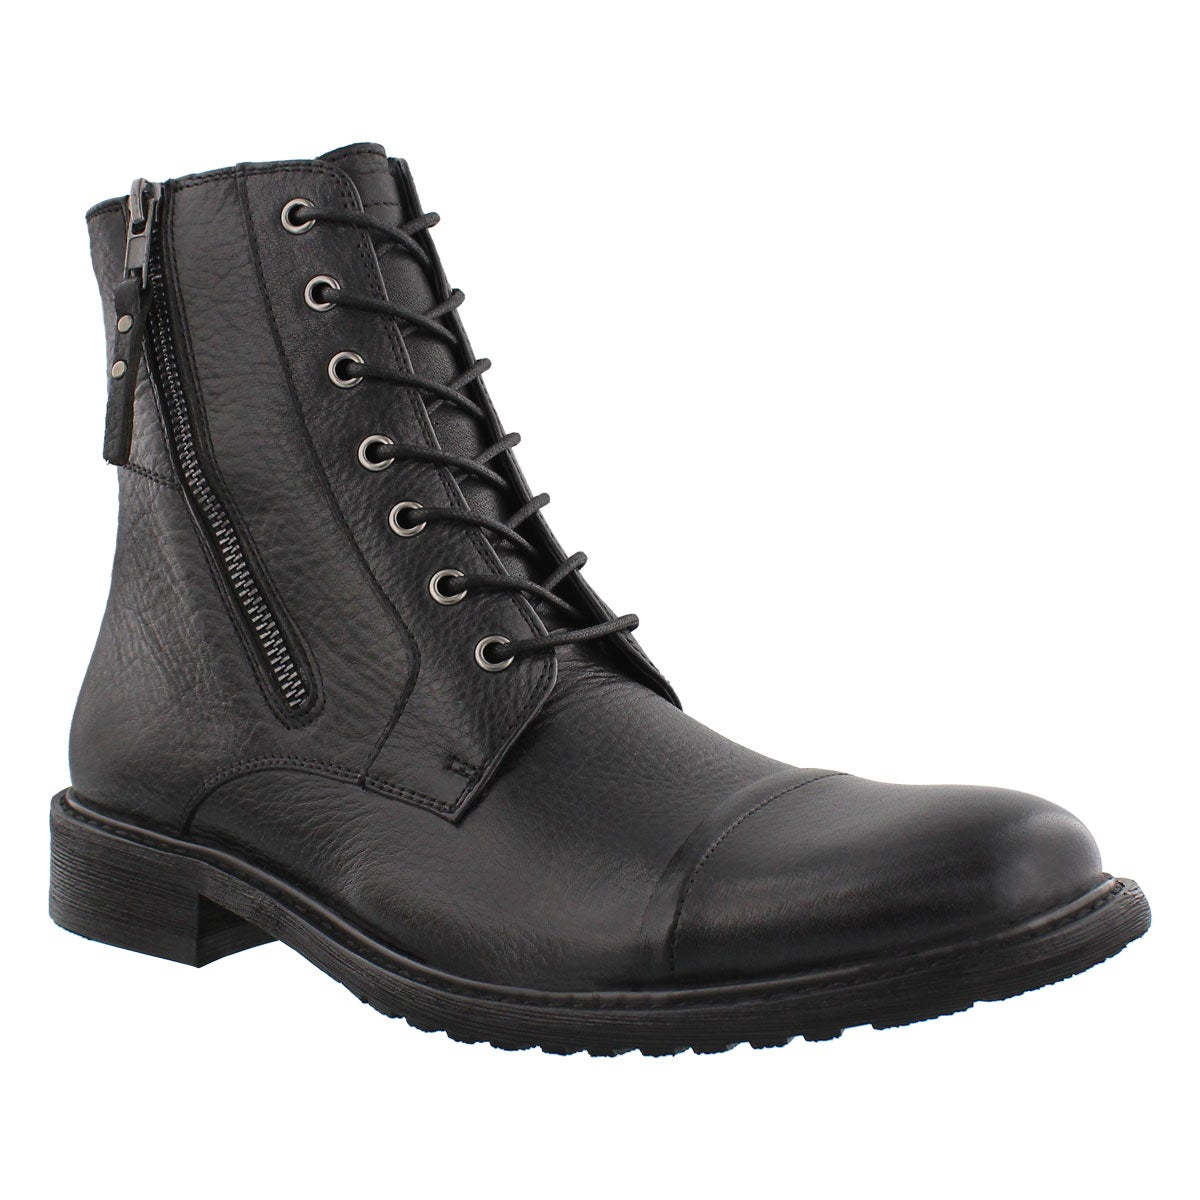 Mns Trooper blk lthr lace & zip boot